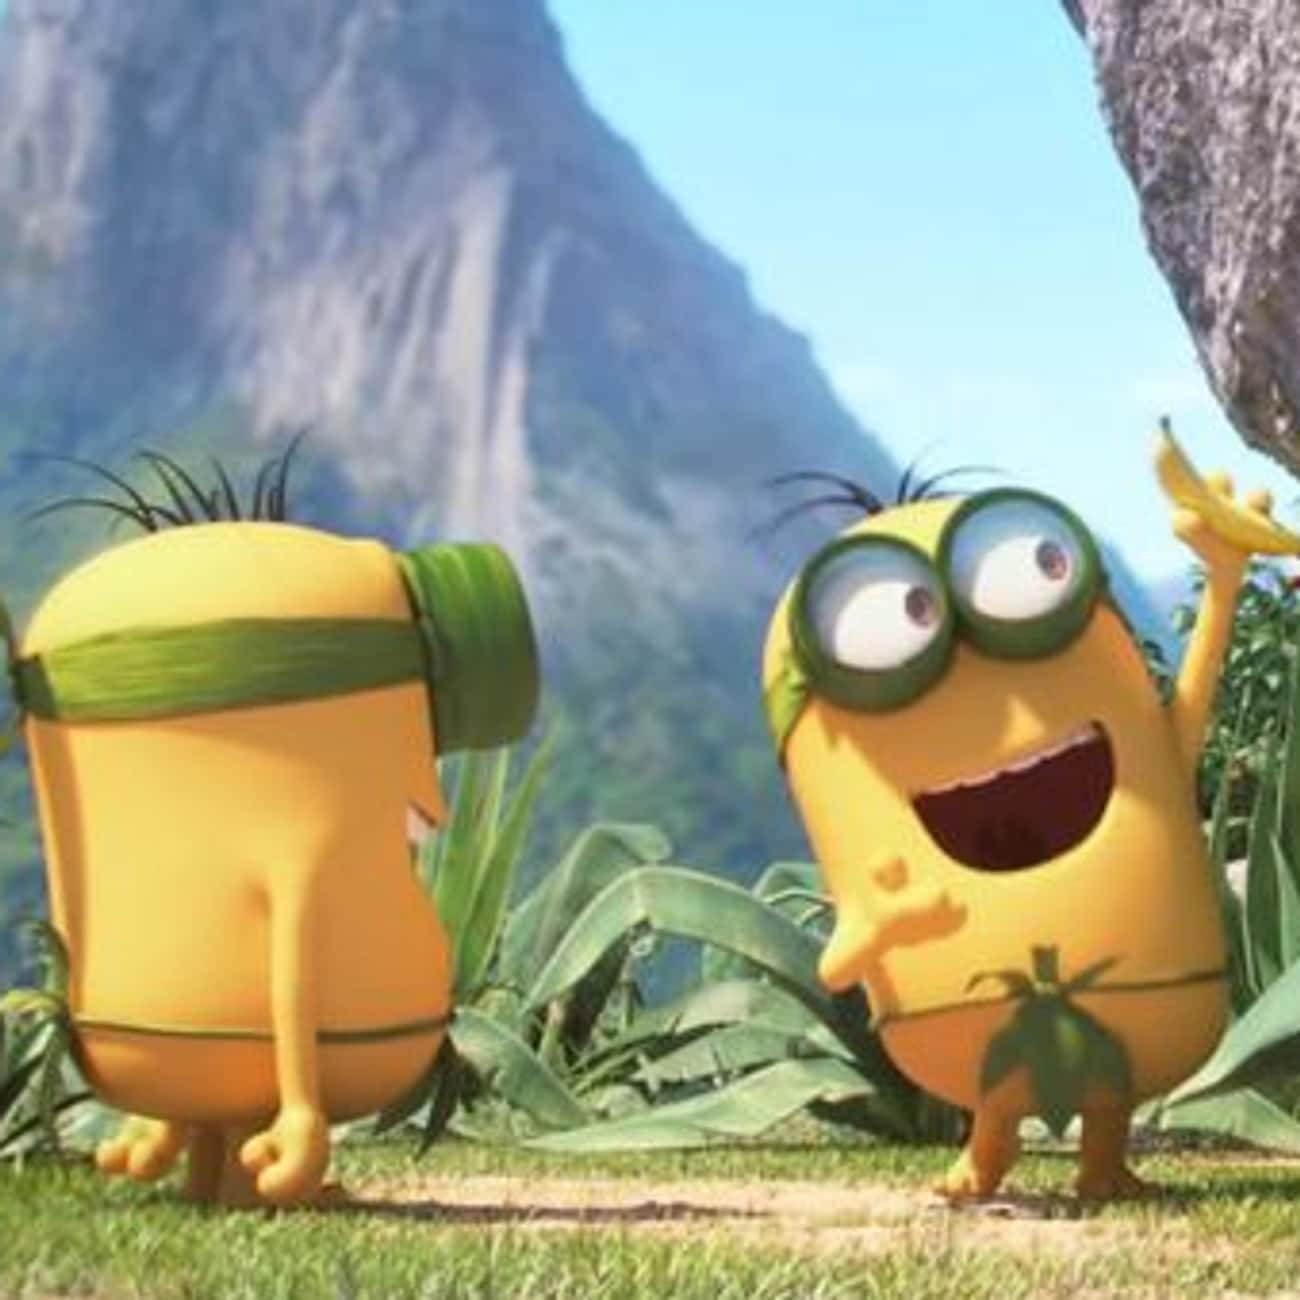 C'est Banana! is listed (or ranked) 4 on the list Minions Movie Quotes